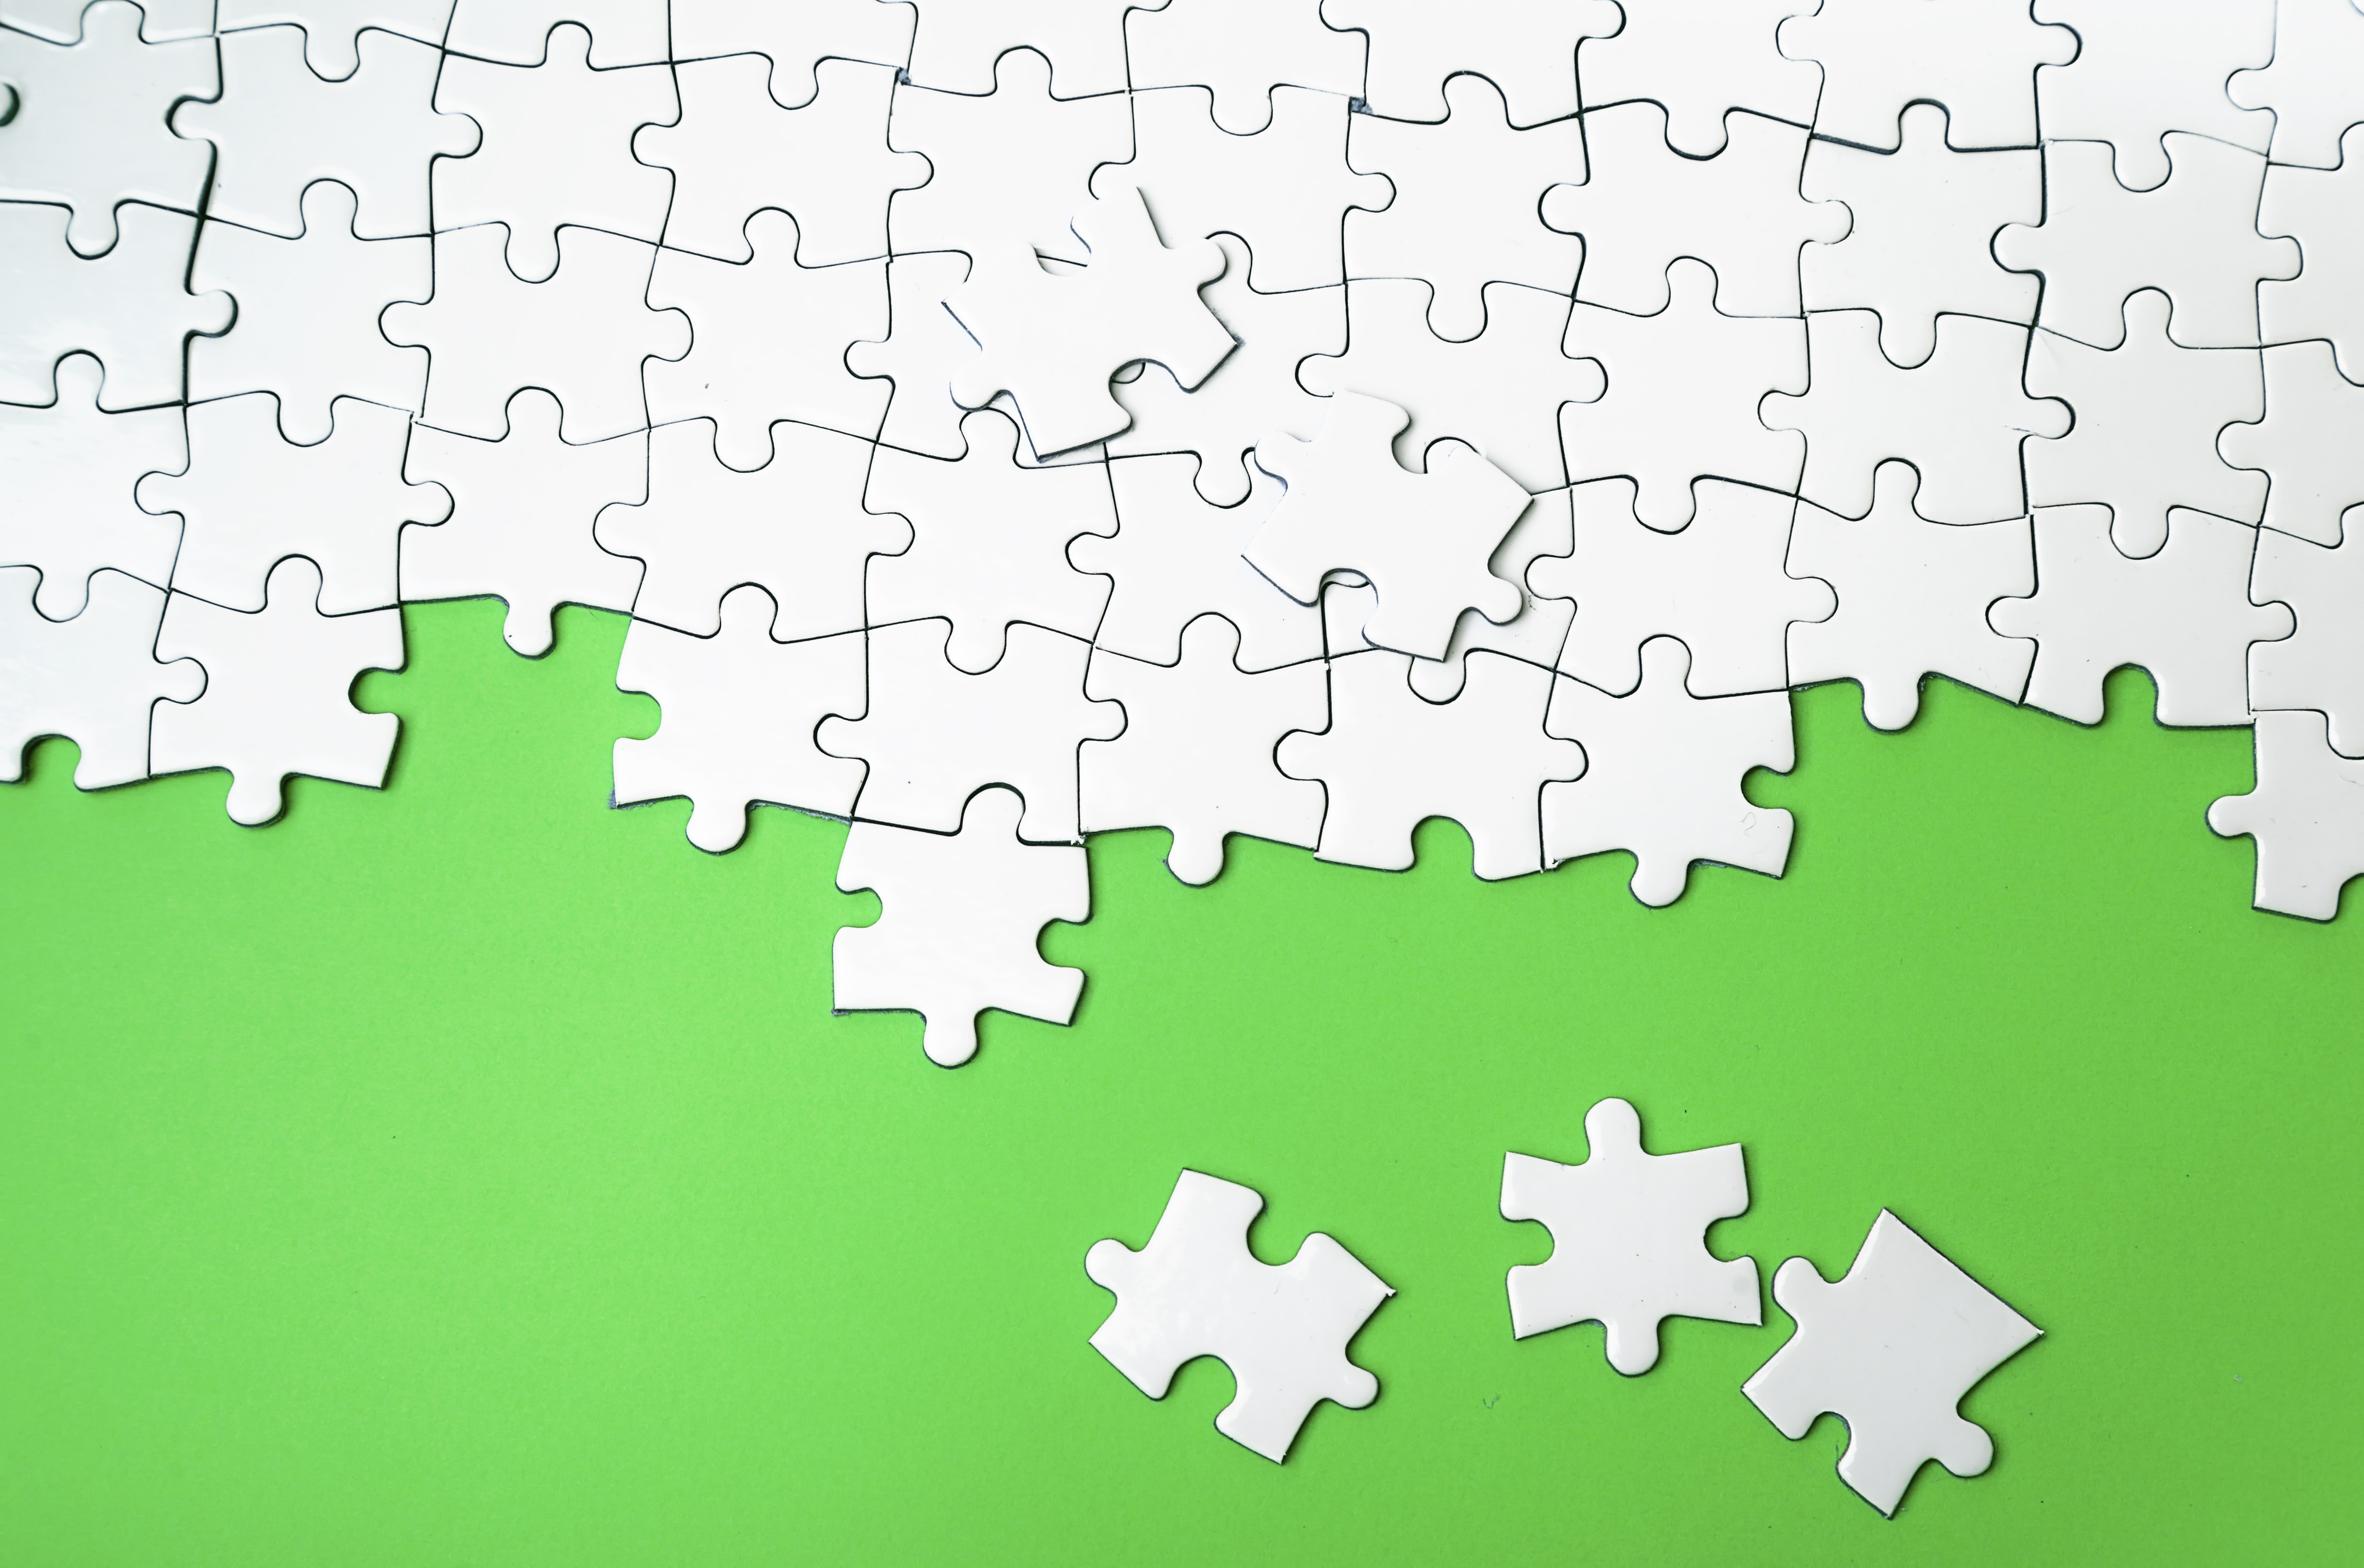 White puzzle pieces on a green background, a metaphor for leaving projects  incomplete when ADHD